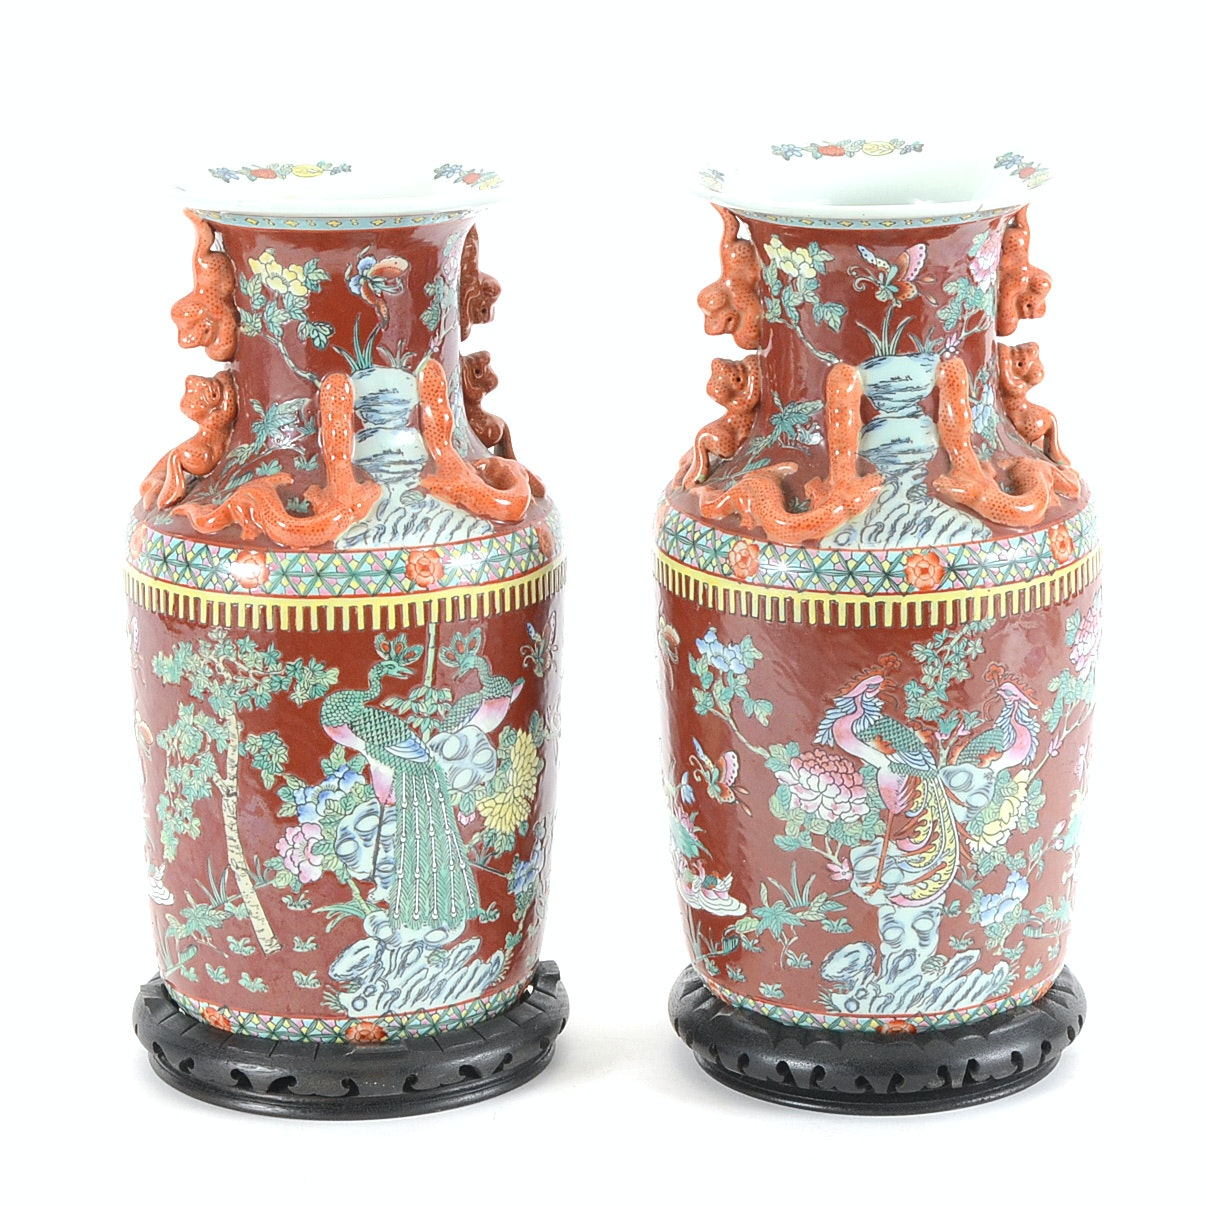 All Categories In Antiques Art Collectibles Decor